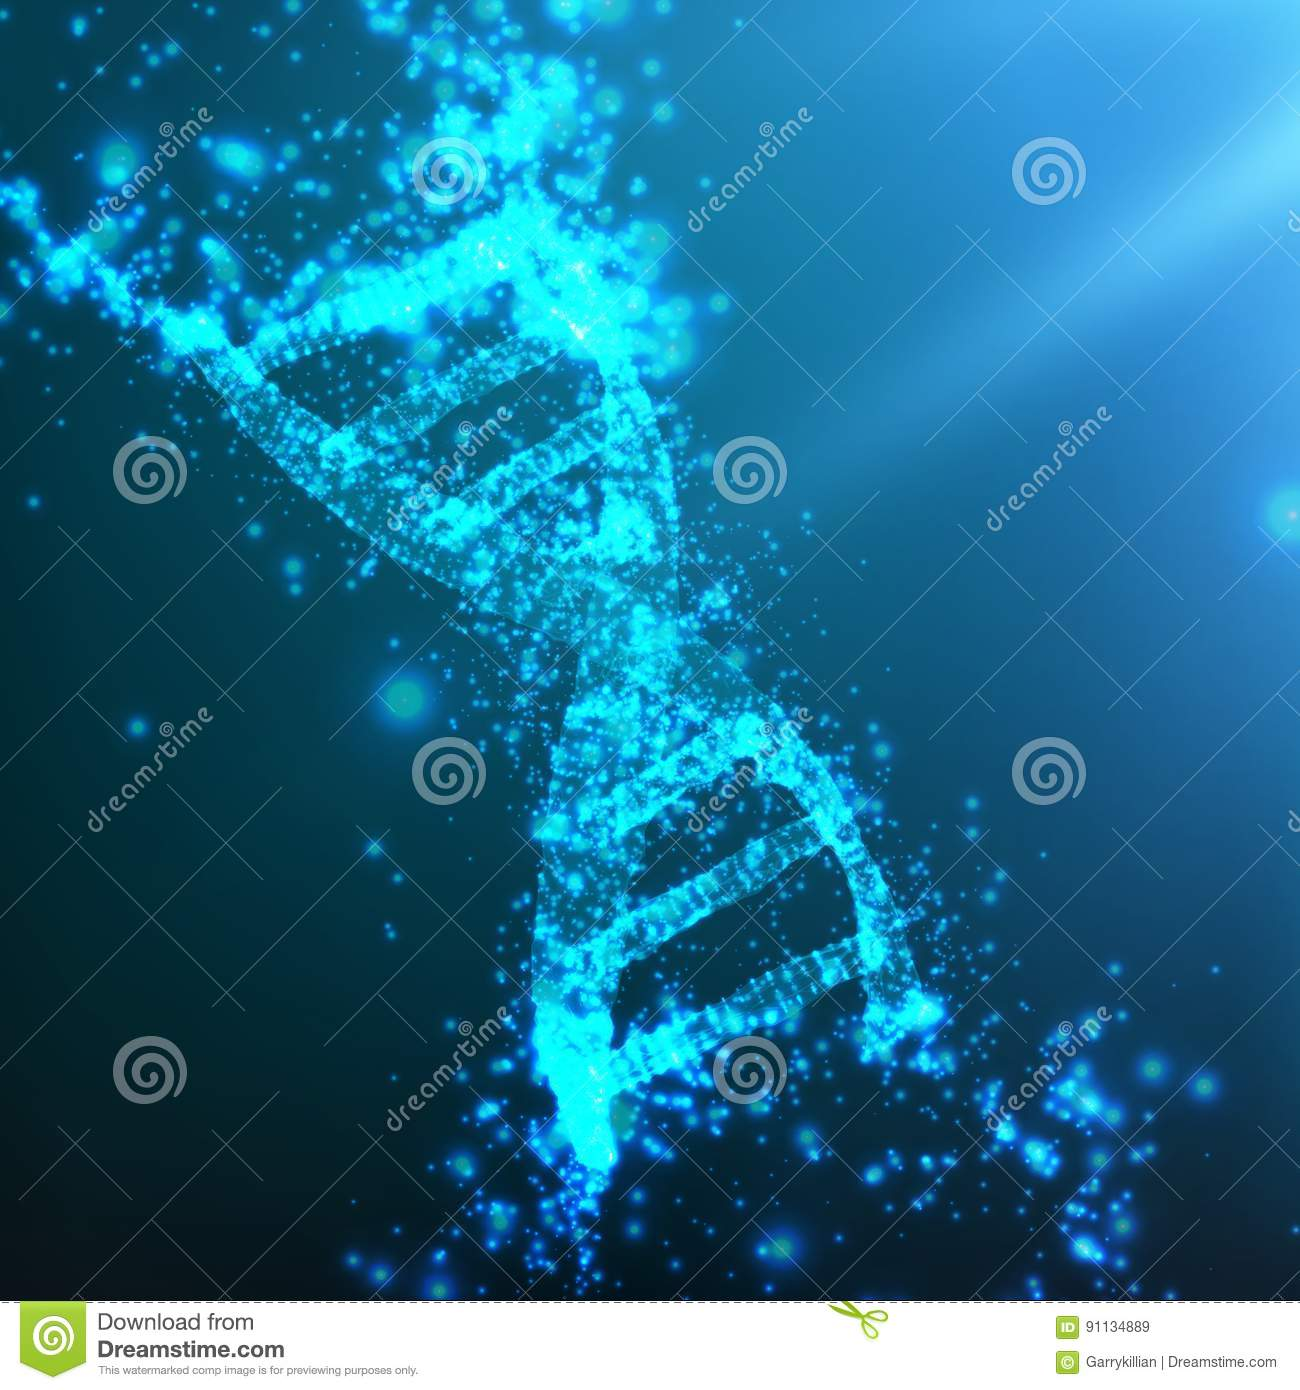 dna the thread of life 1 dna—the thread of life biol 100 – kmarr 1topics this lecture – dna structure  and replication – chapter 10 in essential biology by campbell et al 2lab 7.